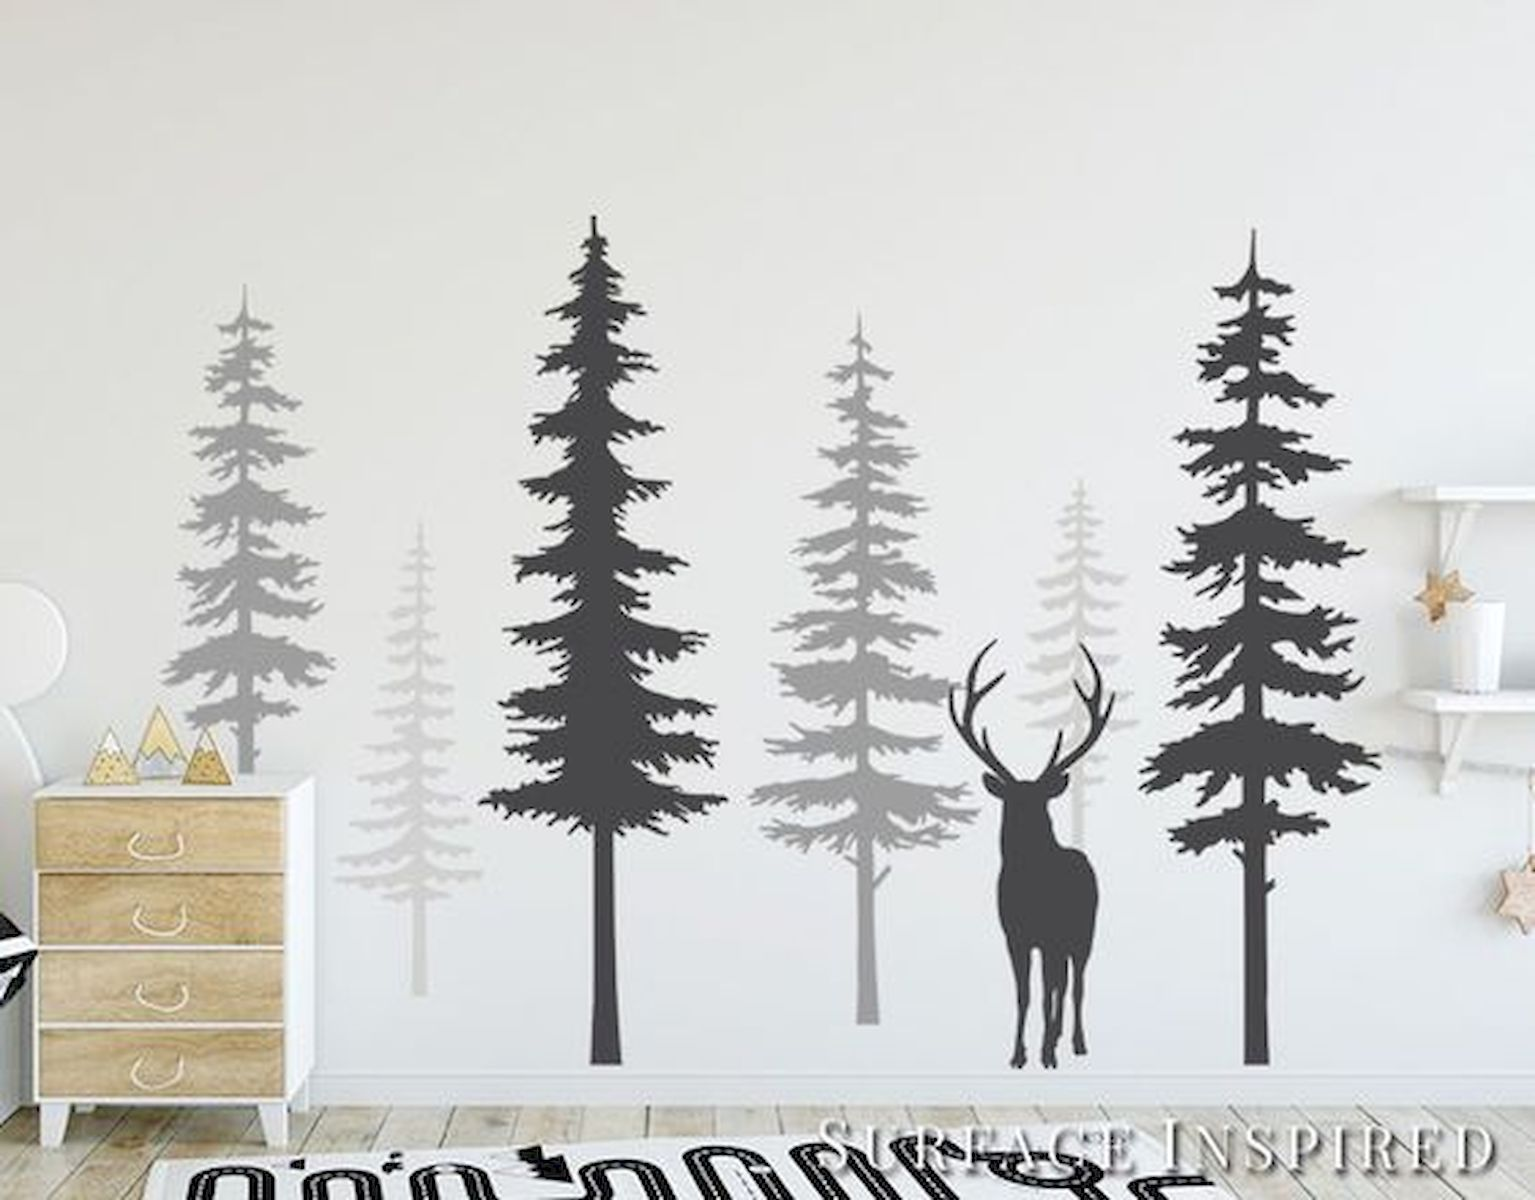 44 Easy but Awesome DIY Wall Painting Ideas to Decorate Your Home (35)